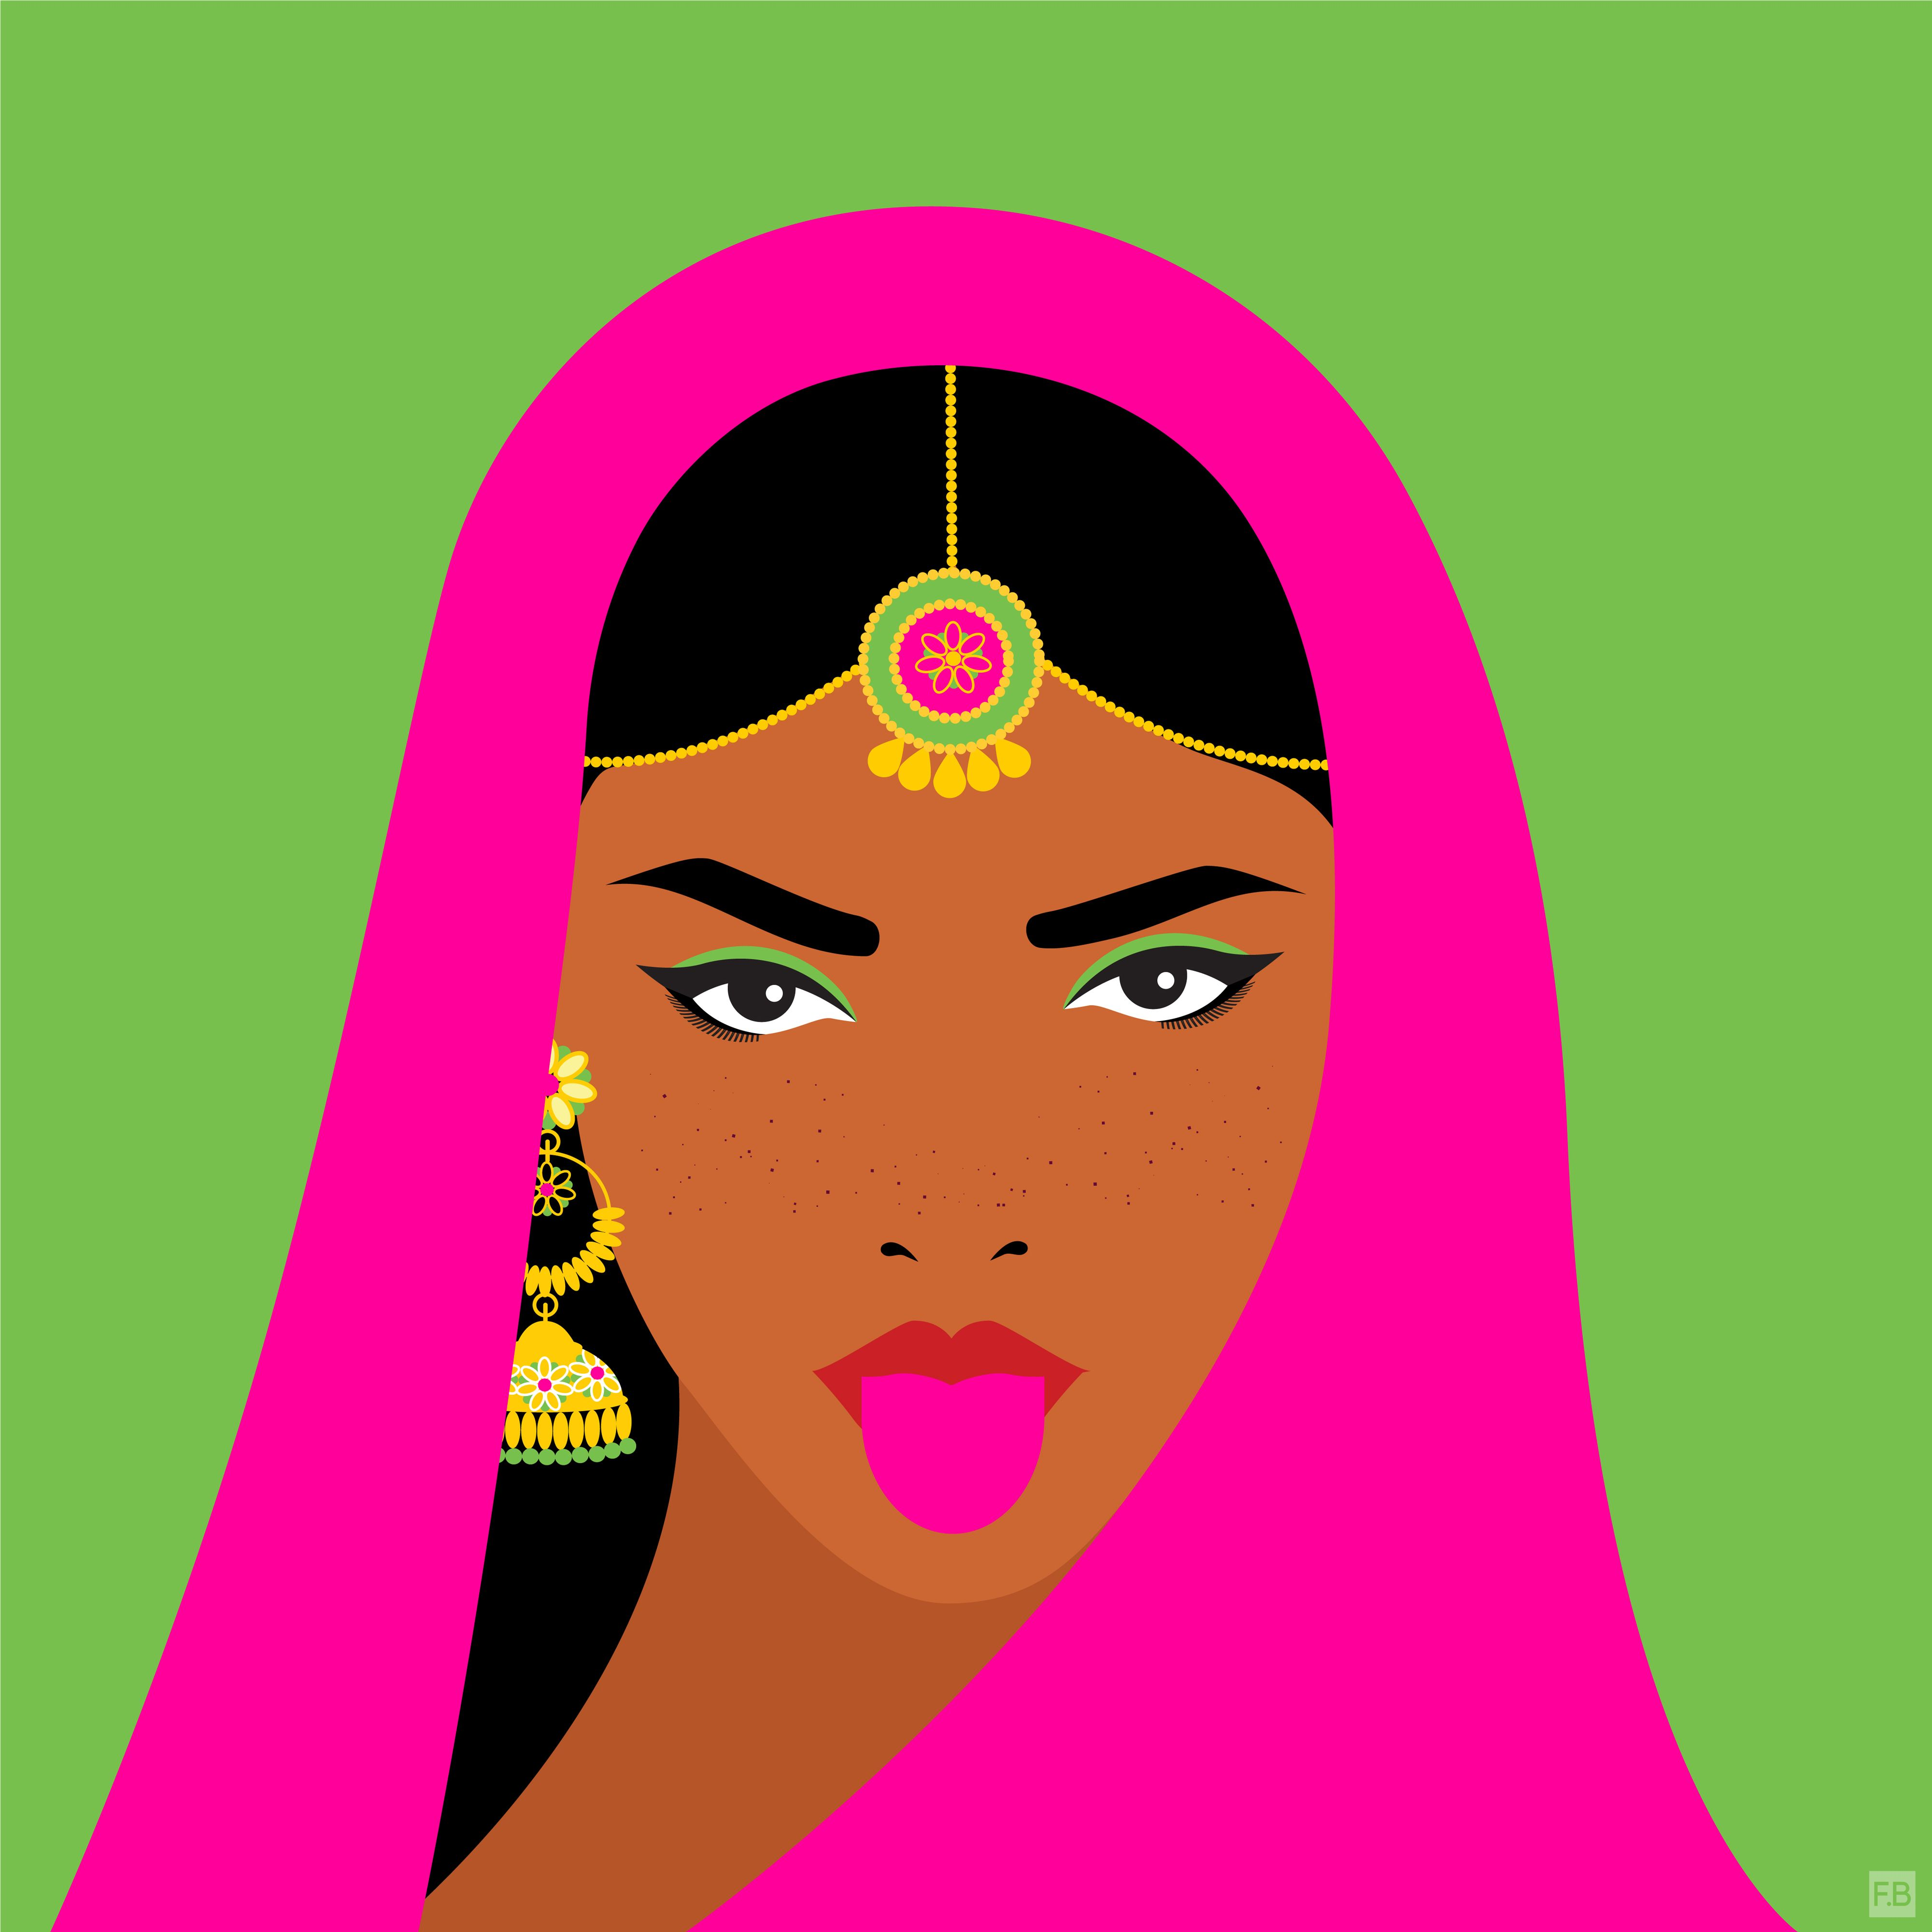 The beauty of diversity by Fatemah Baig ⋆ L'Eclectique -   13 beauty Icon art ideas